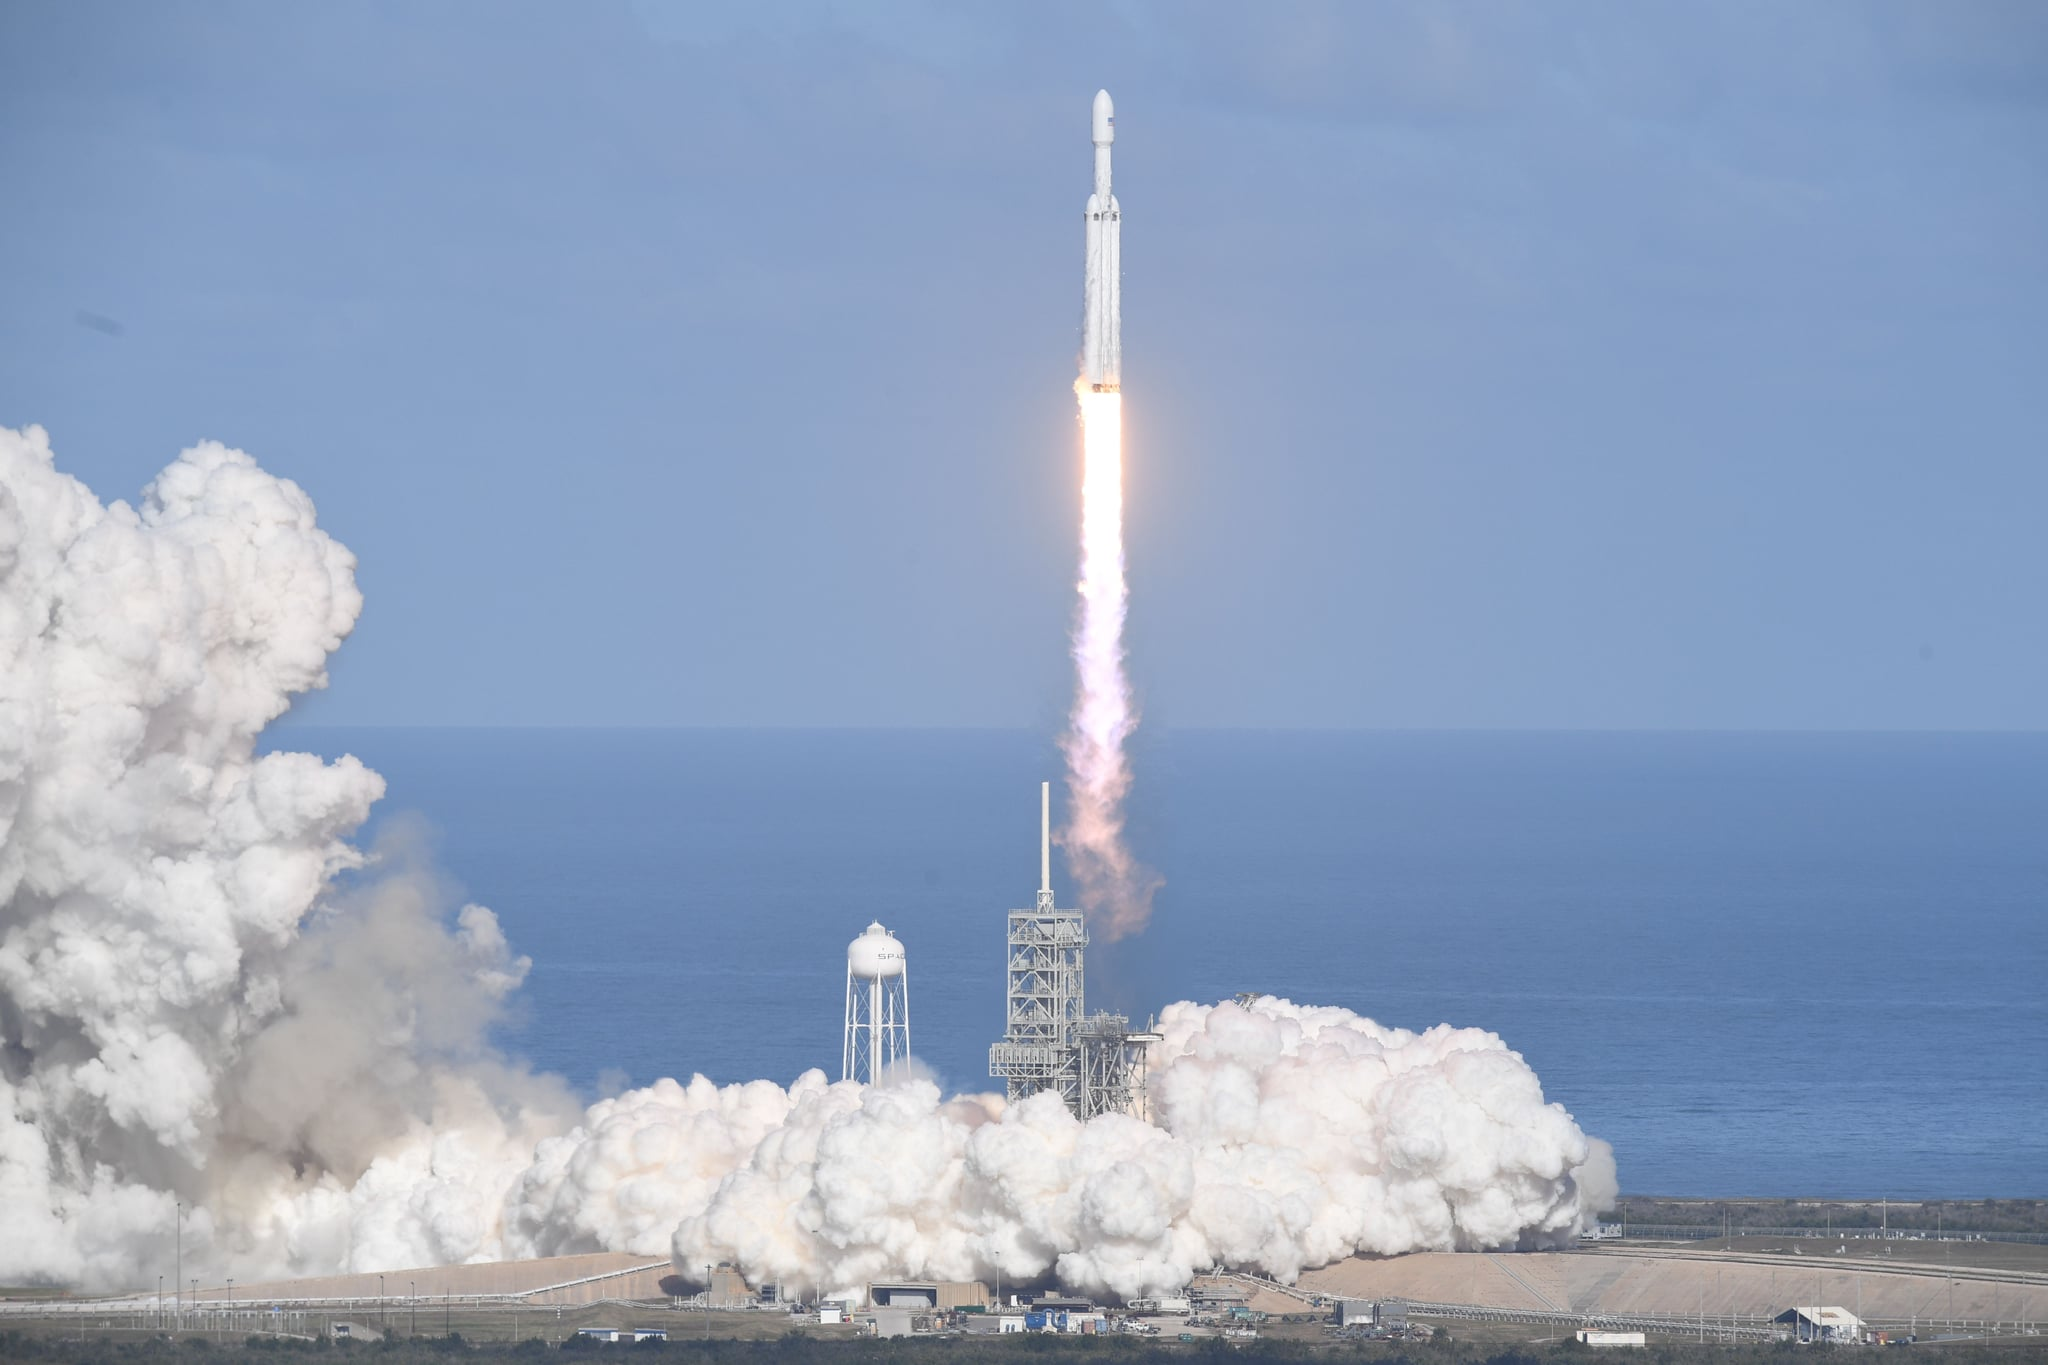 Unimpressed Roscosmos calls SpaceX's Falcon Heavy launch 'nice trick'